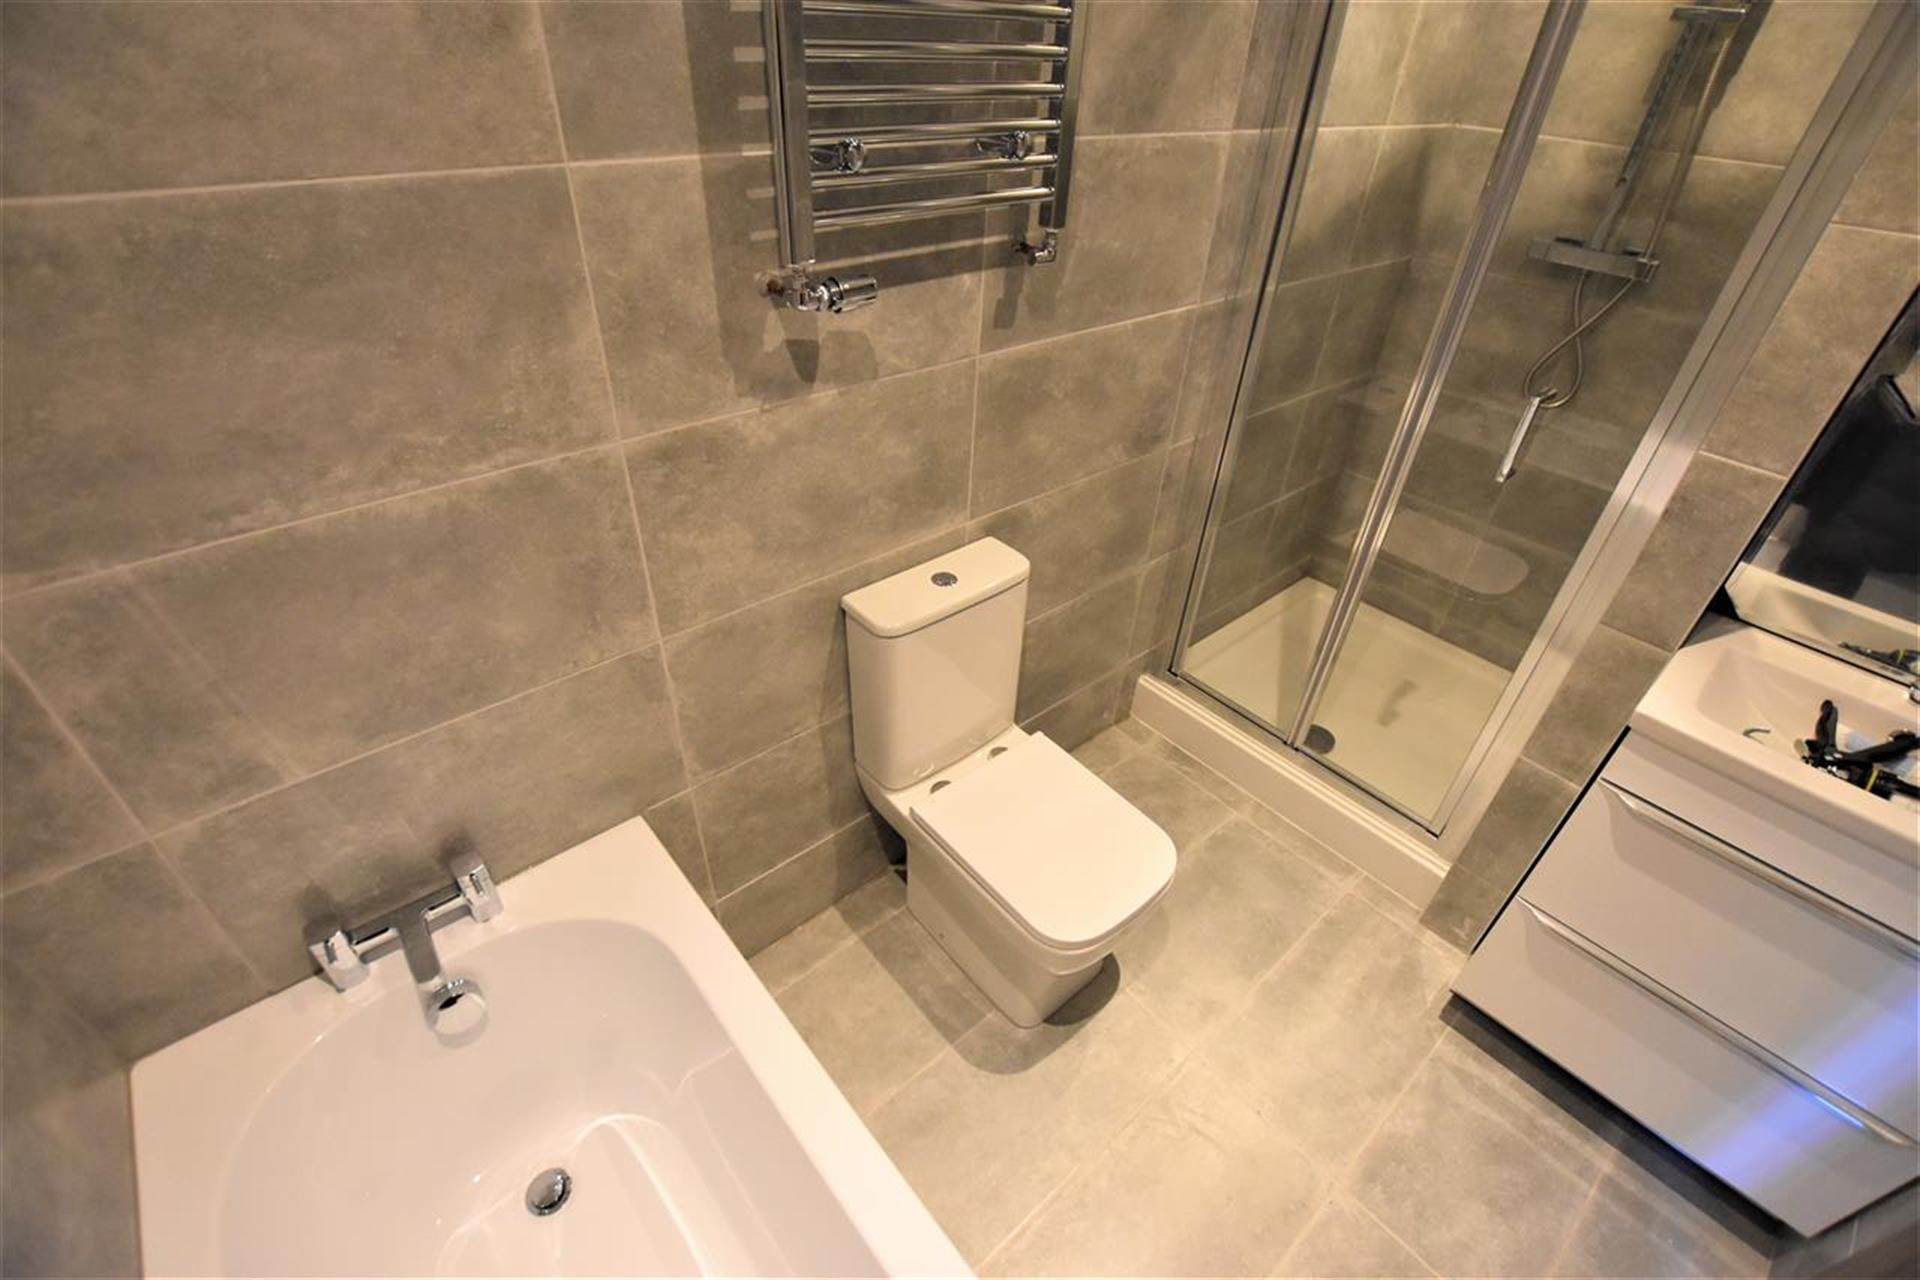 3 Bedroom Semi-detached House For Sale - Master Bathroom